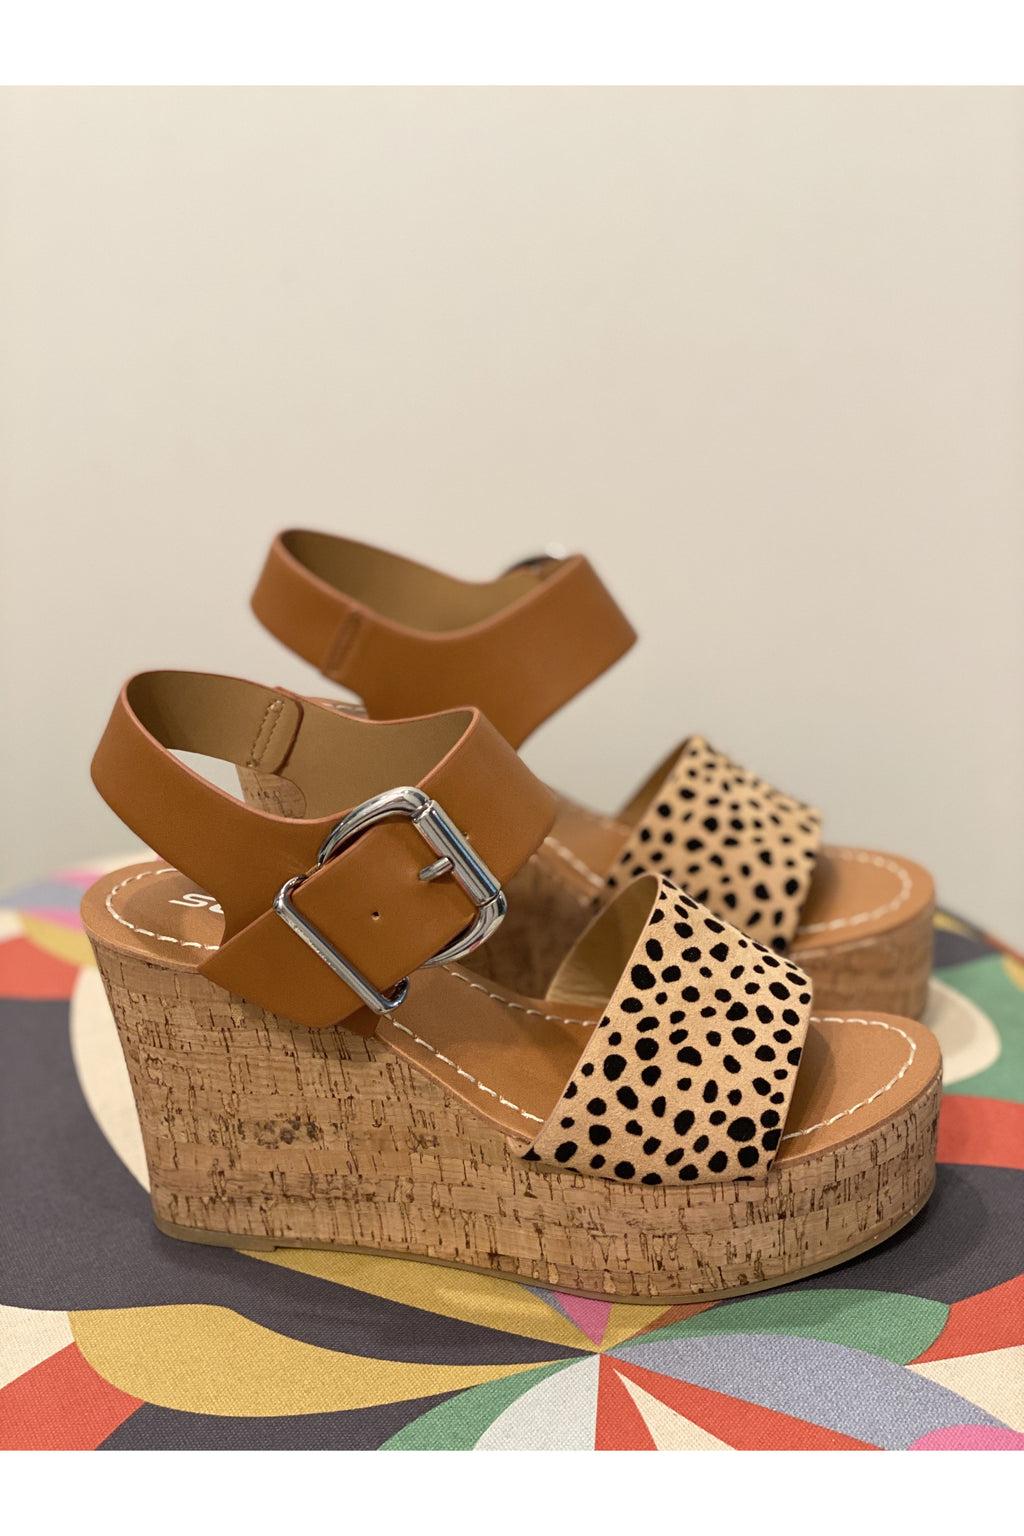 Cheetah Wedges